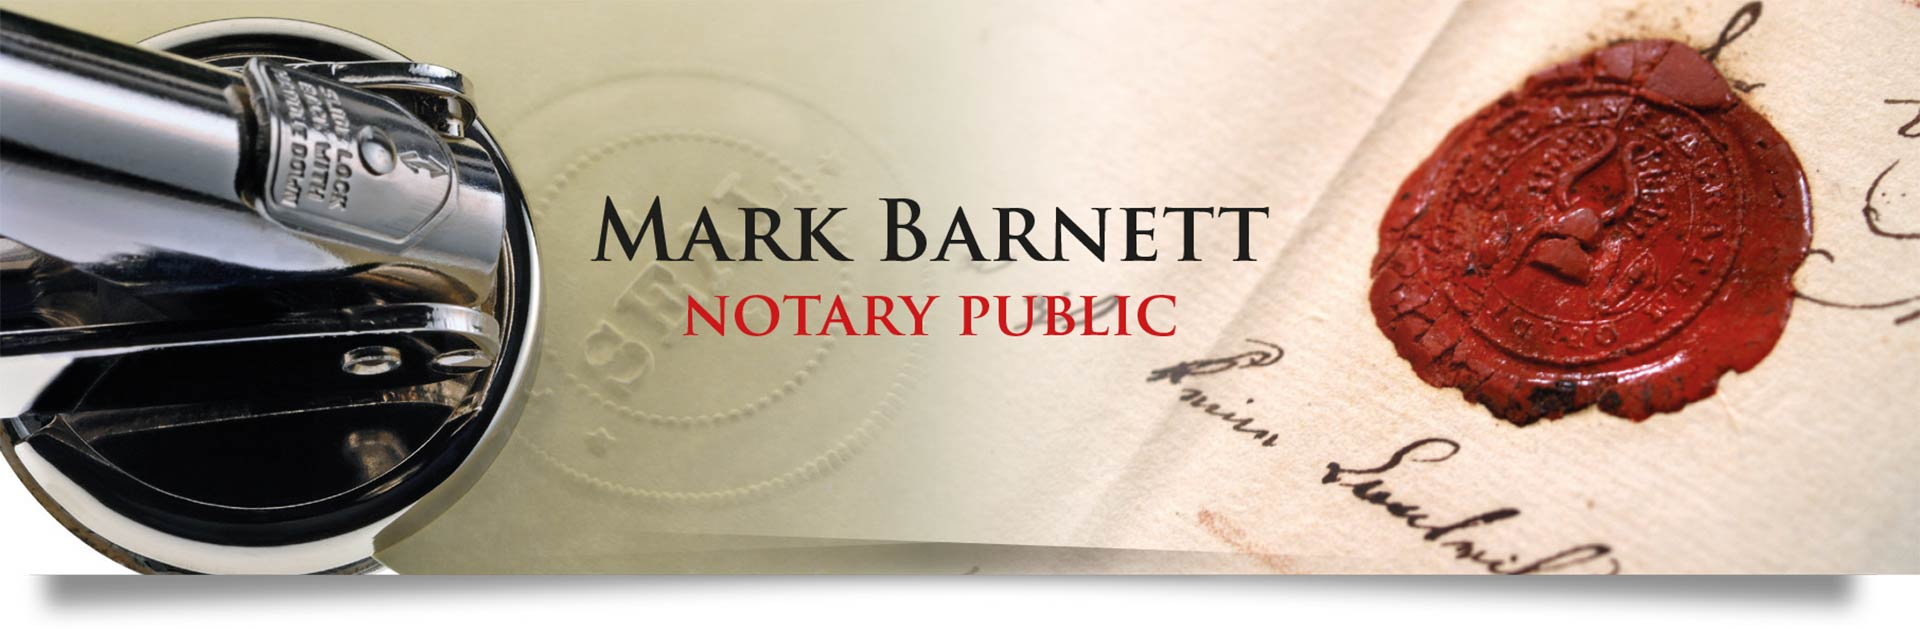 Notary Public Mayfair London